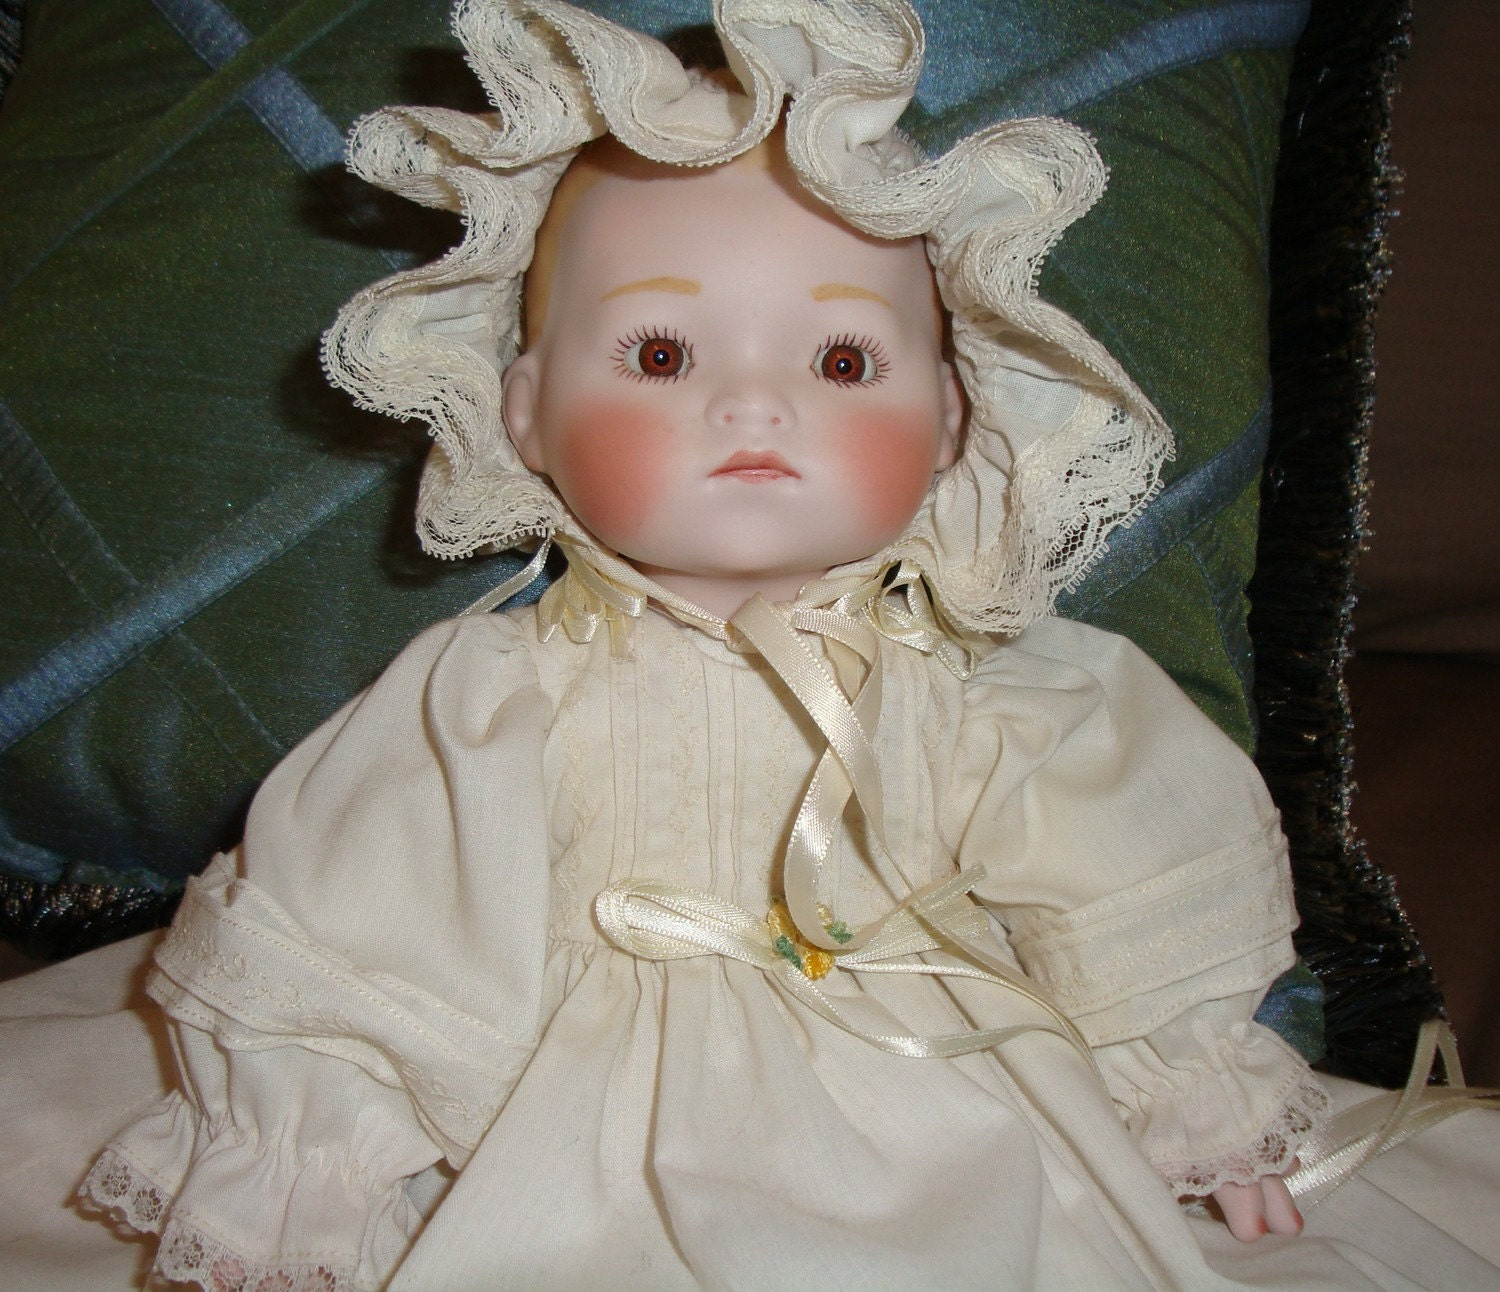 Old Fashioned Doll Accent Pillow Porcelain Face And Hands